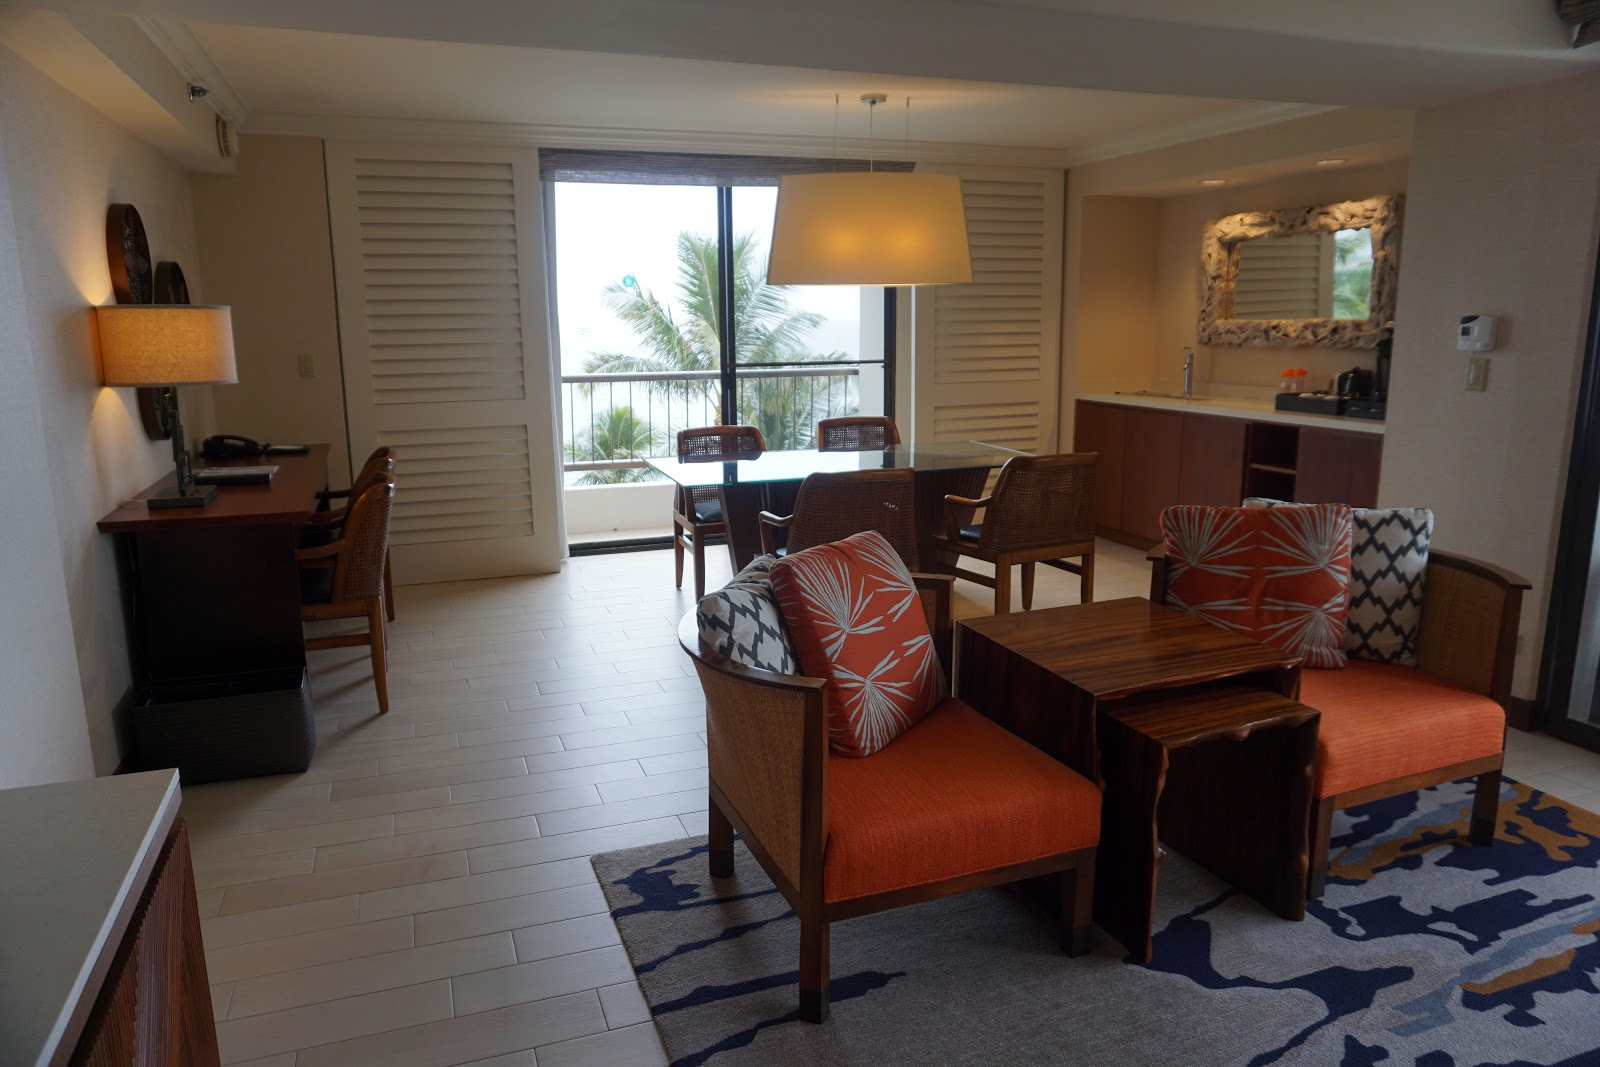 maui hotels with kitchens where can i buy an island for my kitchen review hyatt regency resort and spa deluxe ocean